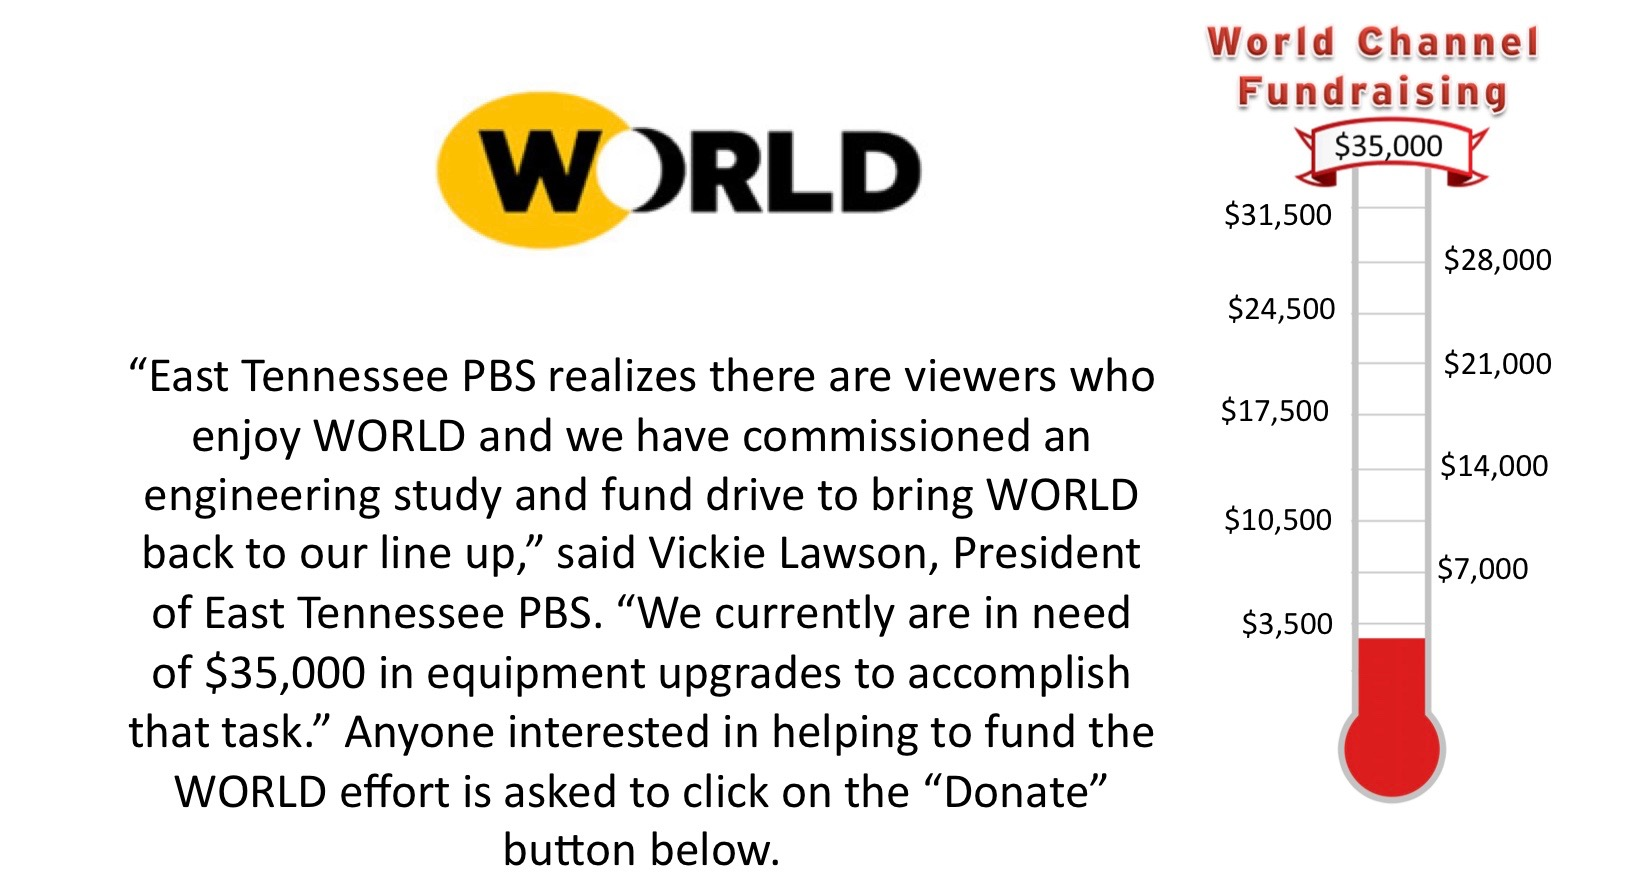 World Channel Fundraising 01252017.jpg